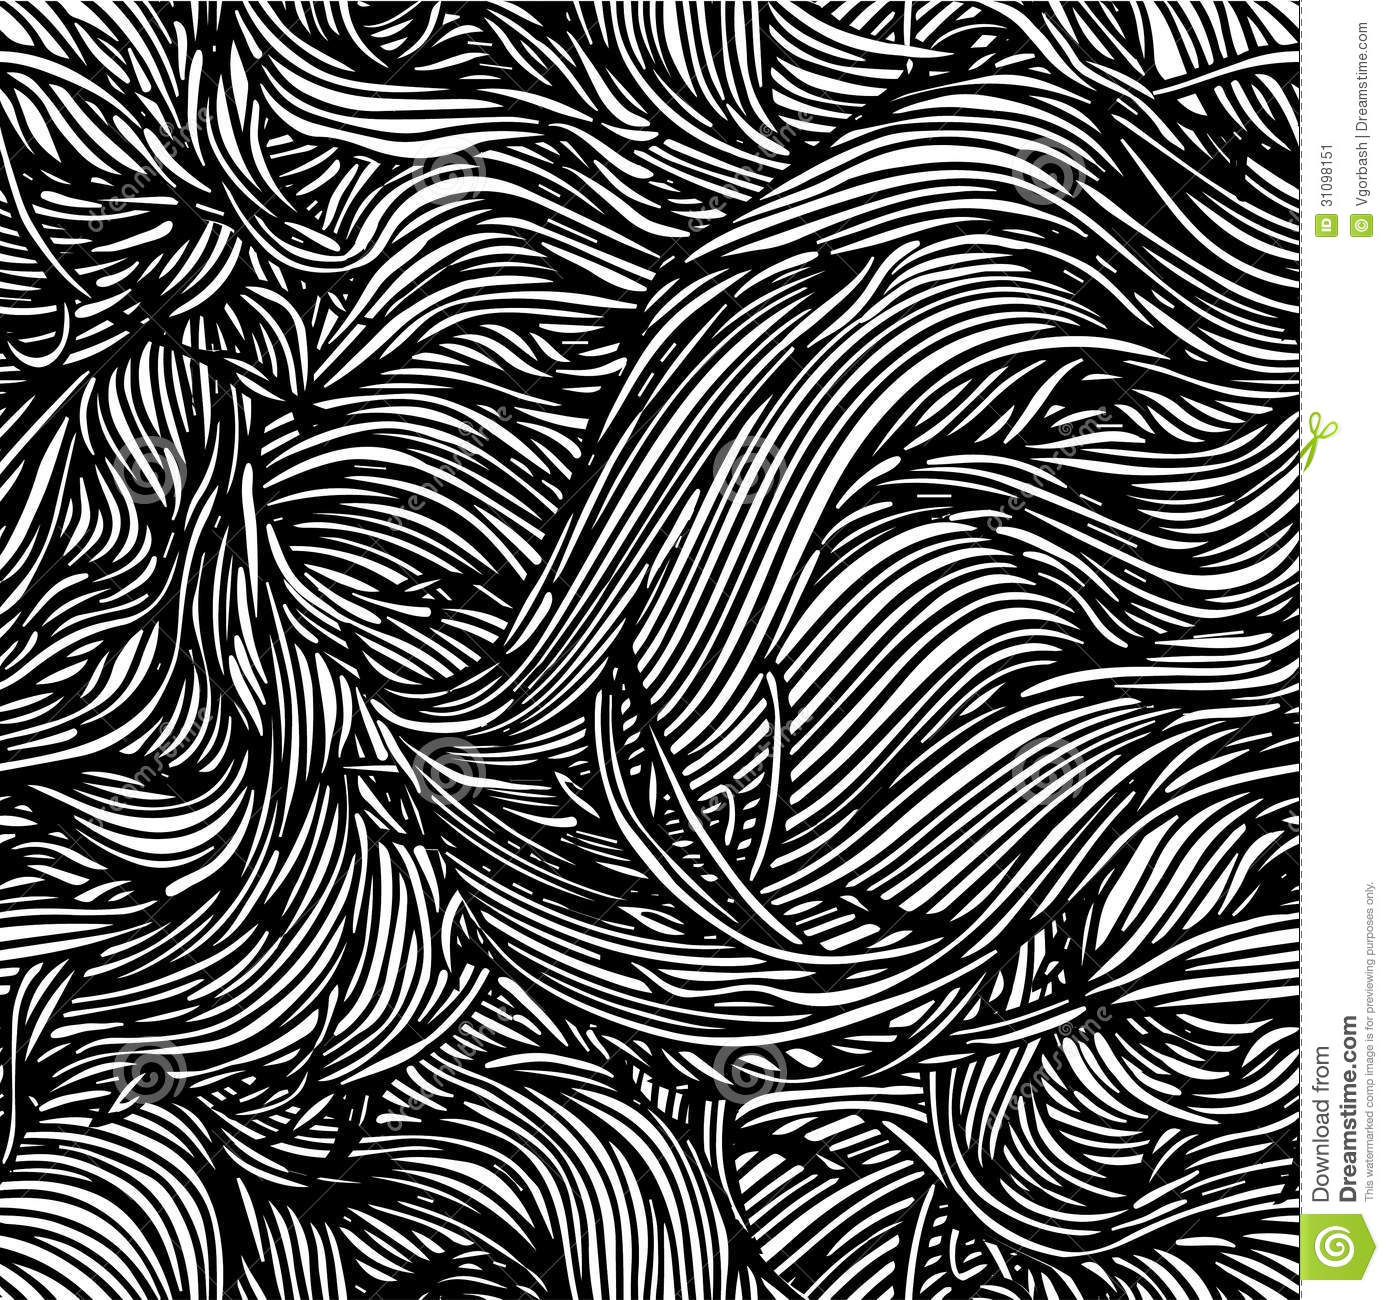 16 cool black and white vectors images black and white for Cool designs in black and white